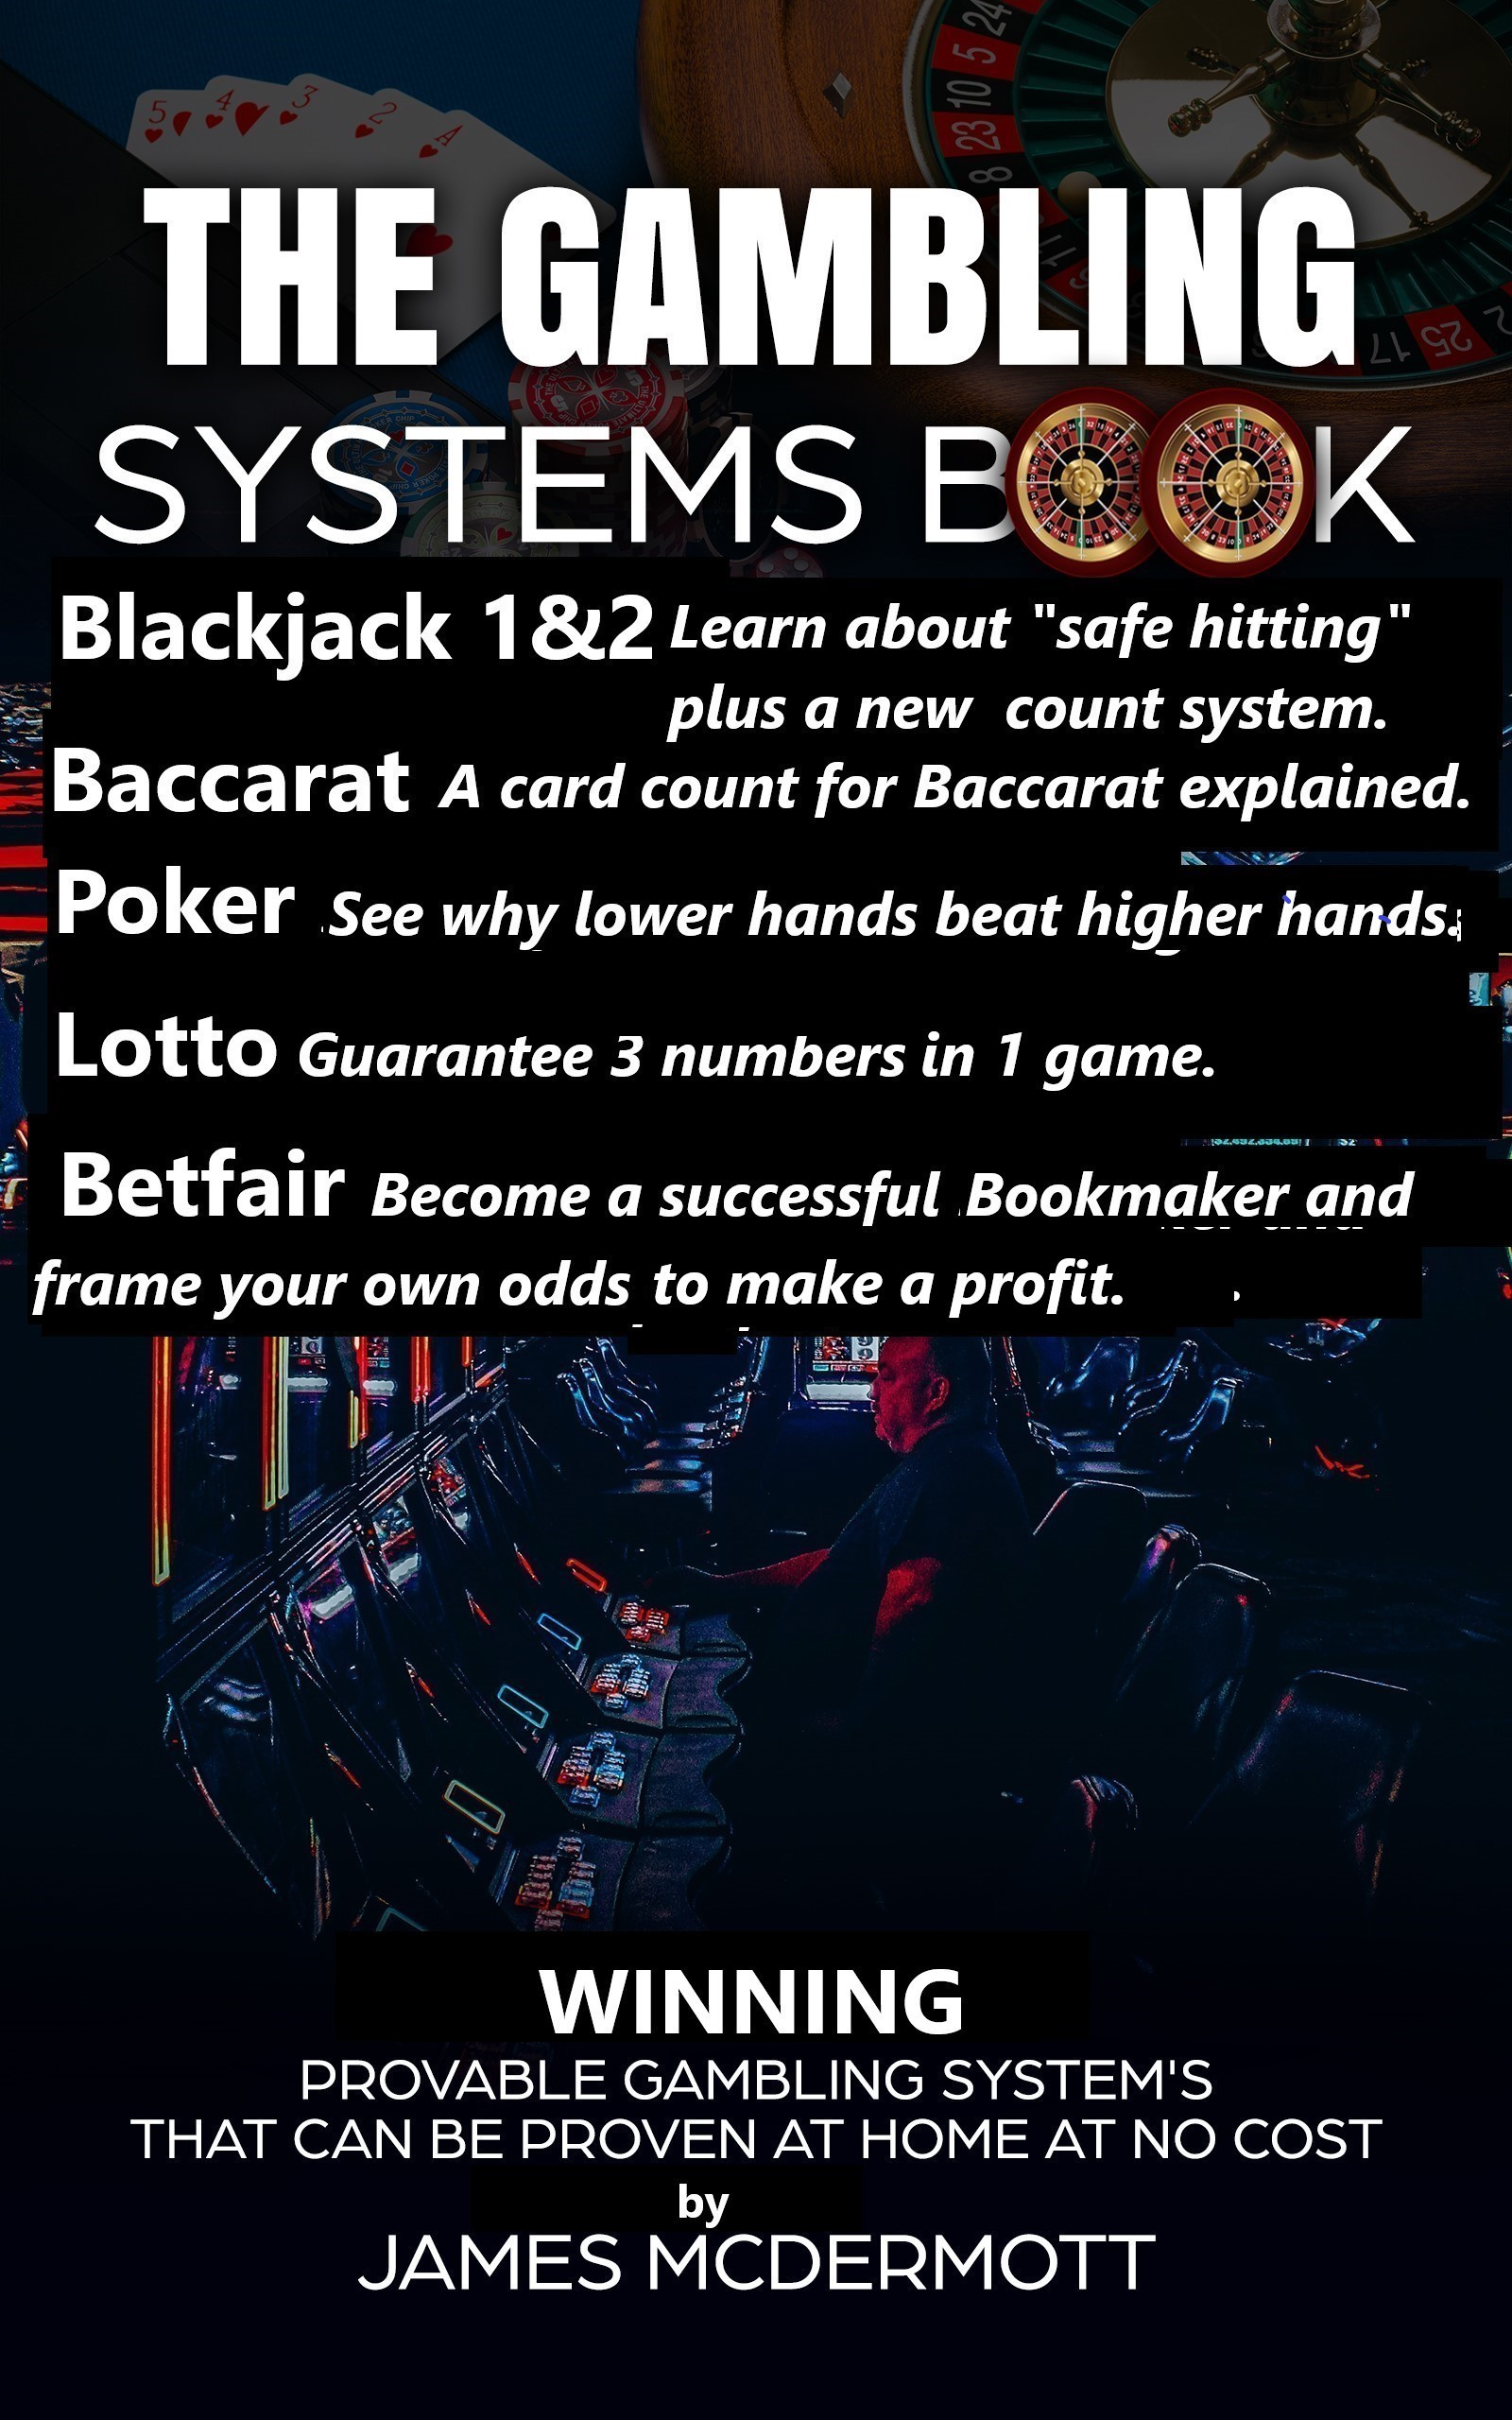 The gambling systems book